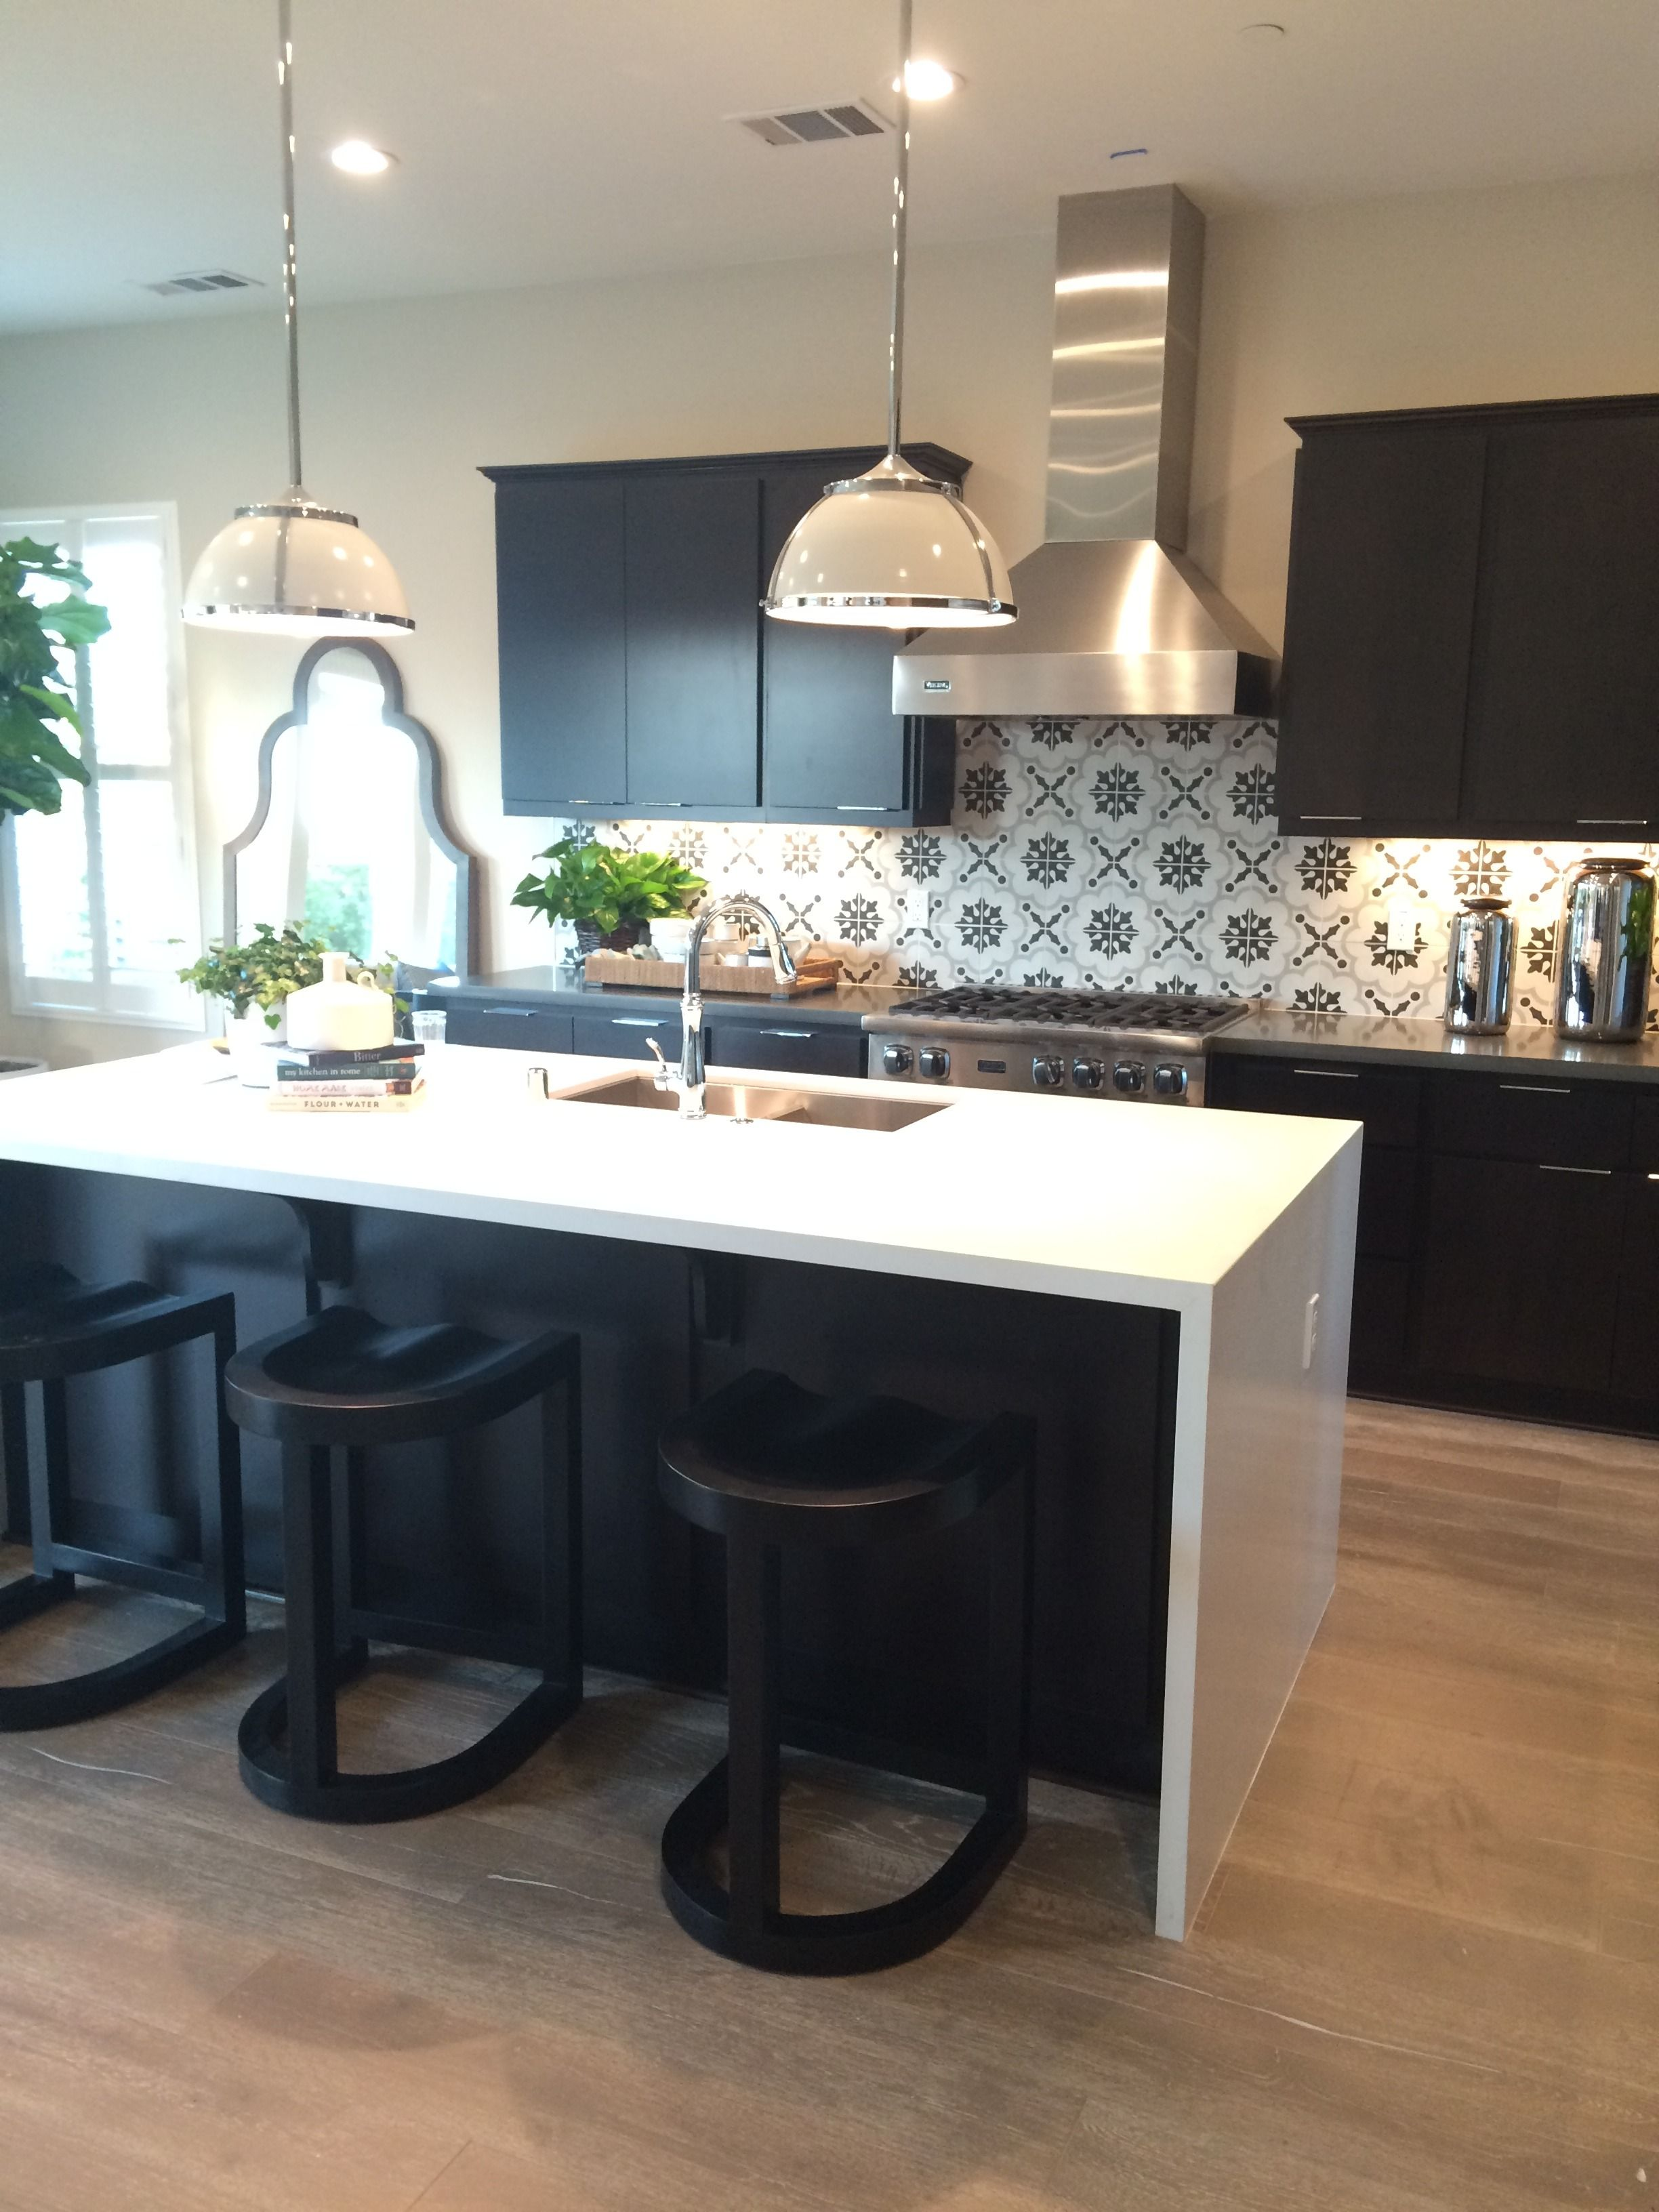 - Our Black & White Cementine Is Looking So Fine! Visit Our Website